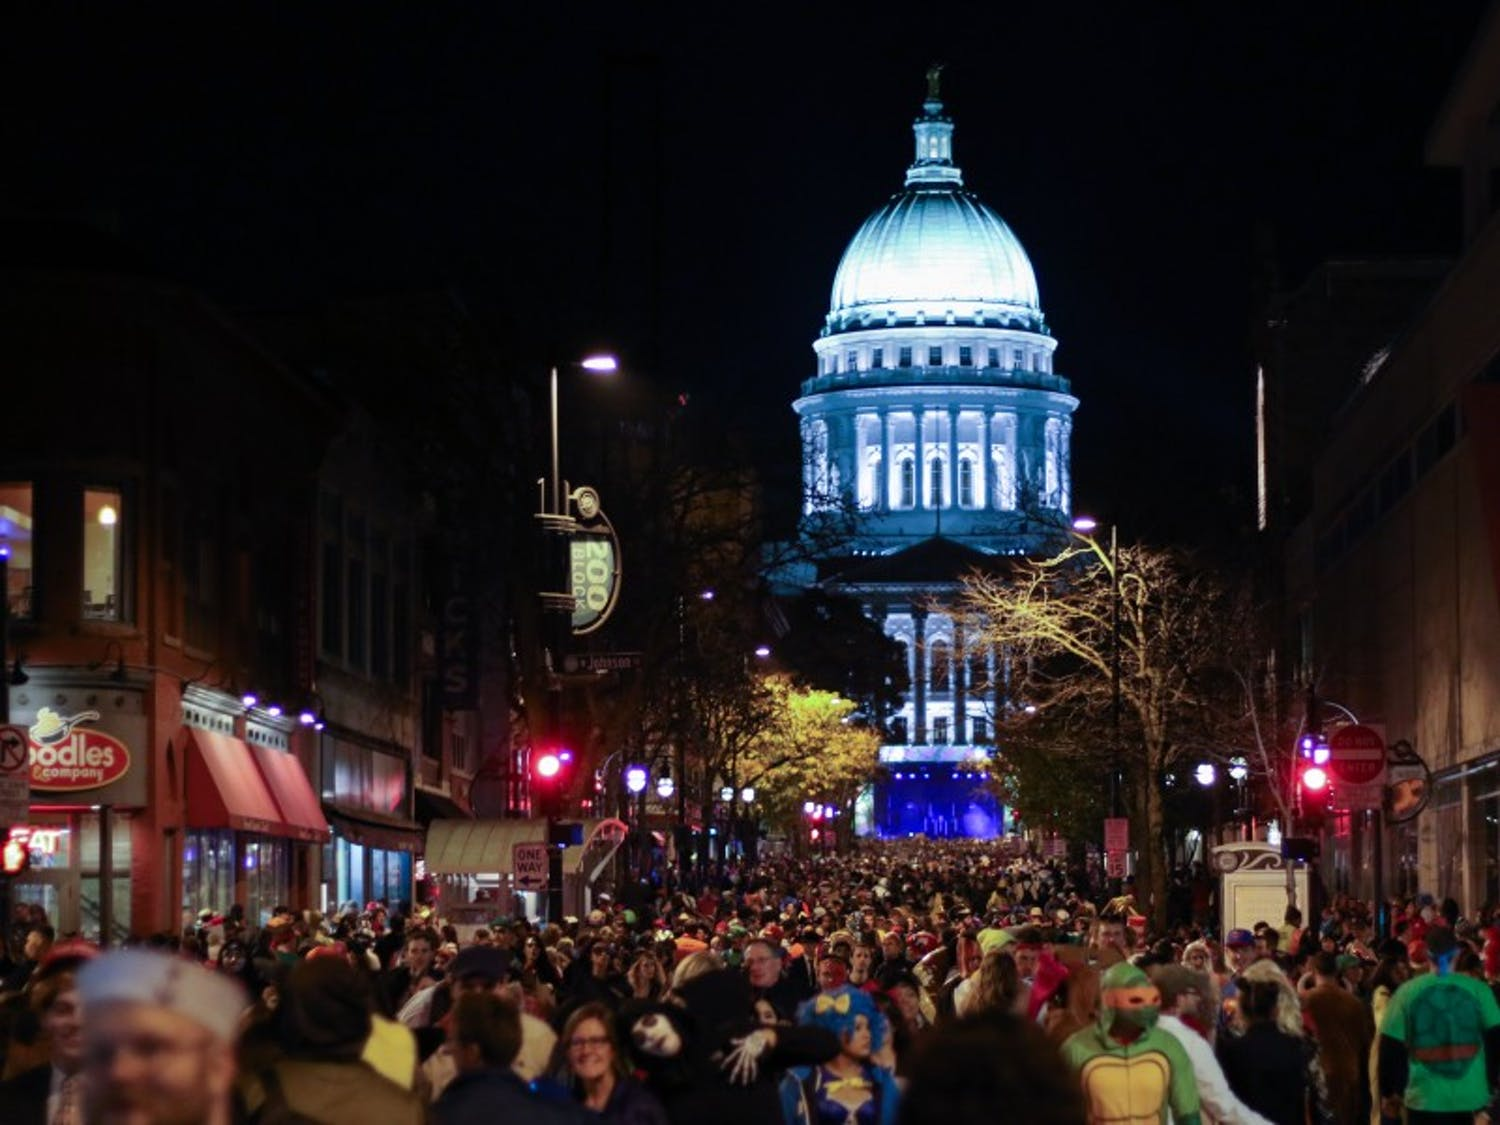 Freakfest's low attendance contributed to a relatively calm weekend for Madison police, who reported only 12 arrests at the event.